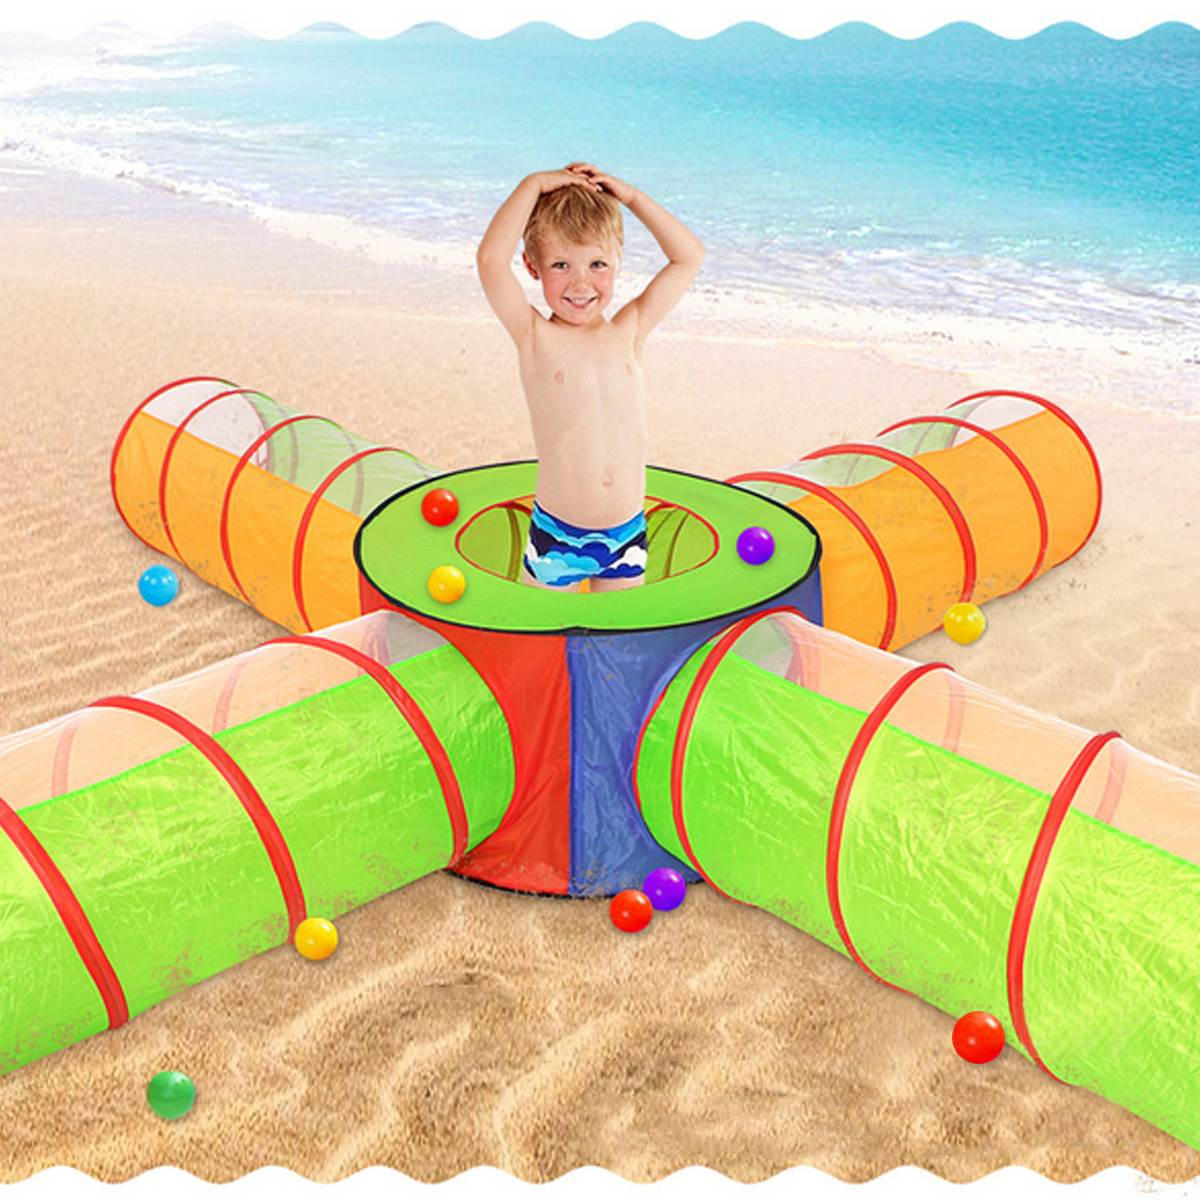 Foldable Children Tent Pool-Tube Pop-up Play Tent Toy Tunnel Kids Play House Ball Pool for Kids Indoor Outdoor Toy indoor and outdoor kids play tent foldable pool tube teepee game room kids play house children birthday gift toys